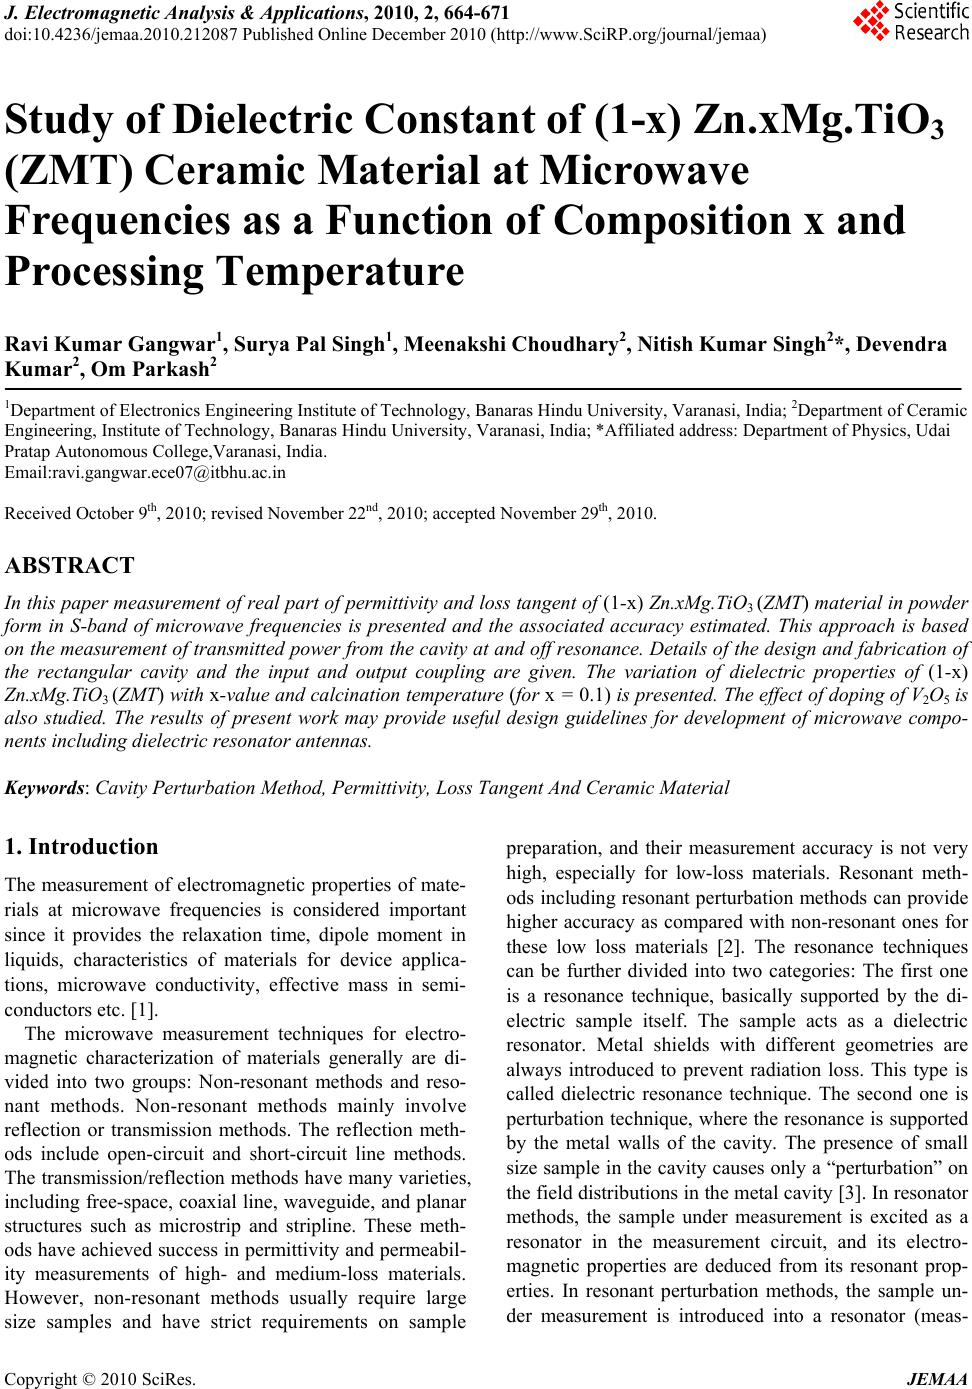 Study Of Dielectric Constant 1 X Znxmgtio3zmt Ceramic Measurement By Change In Using Resonance Circuit Material At Microwavefrequencies As A Function Composition Andprocessing Temperature